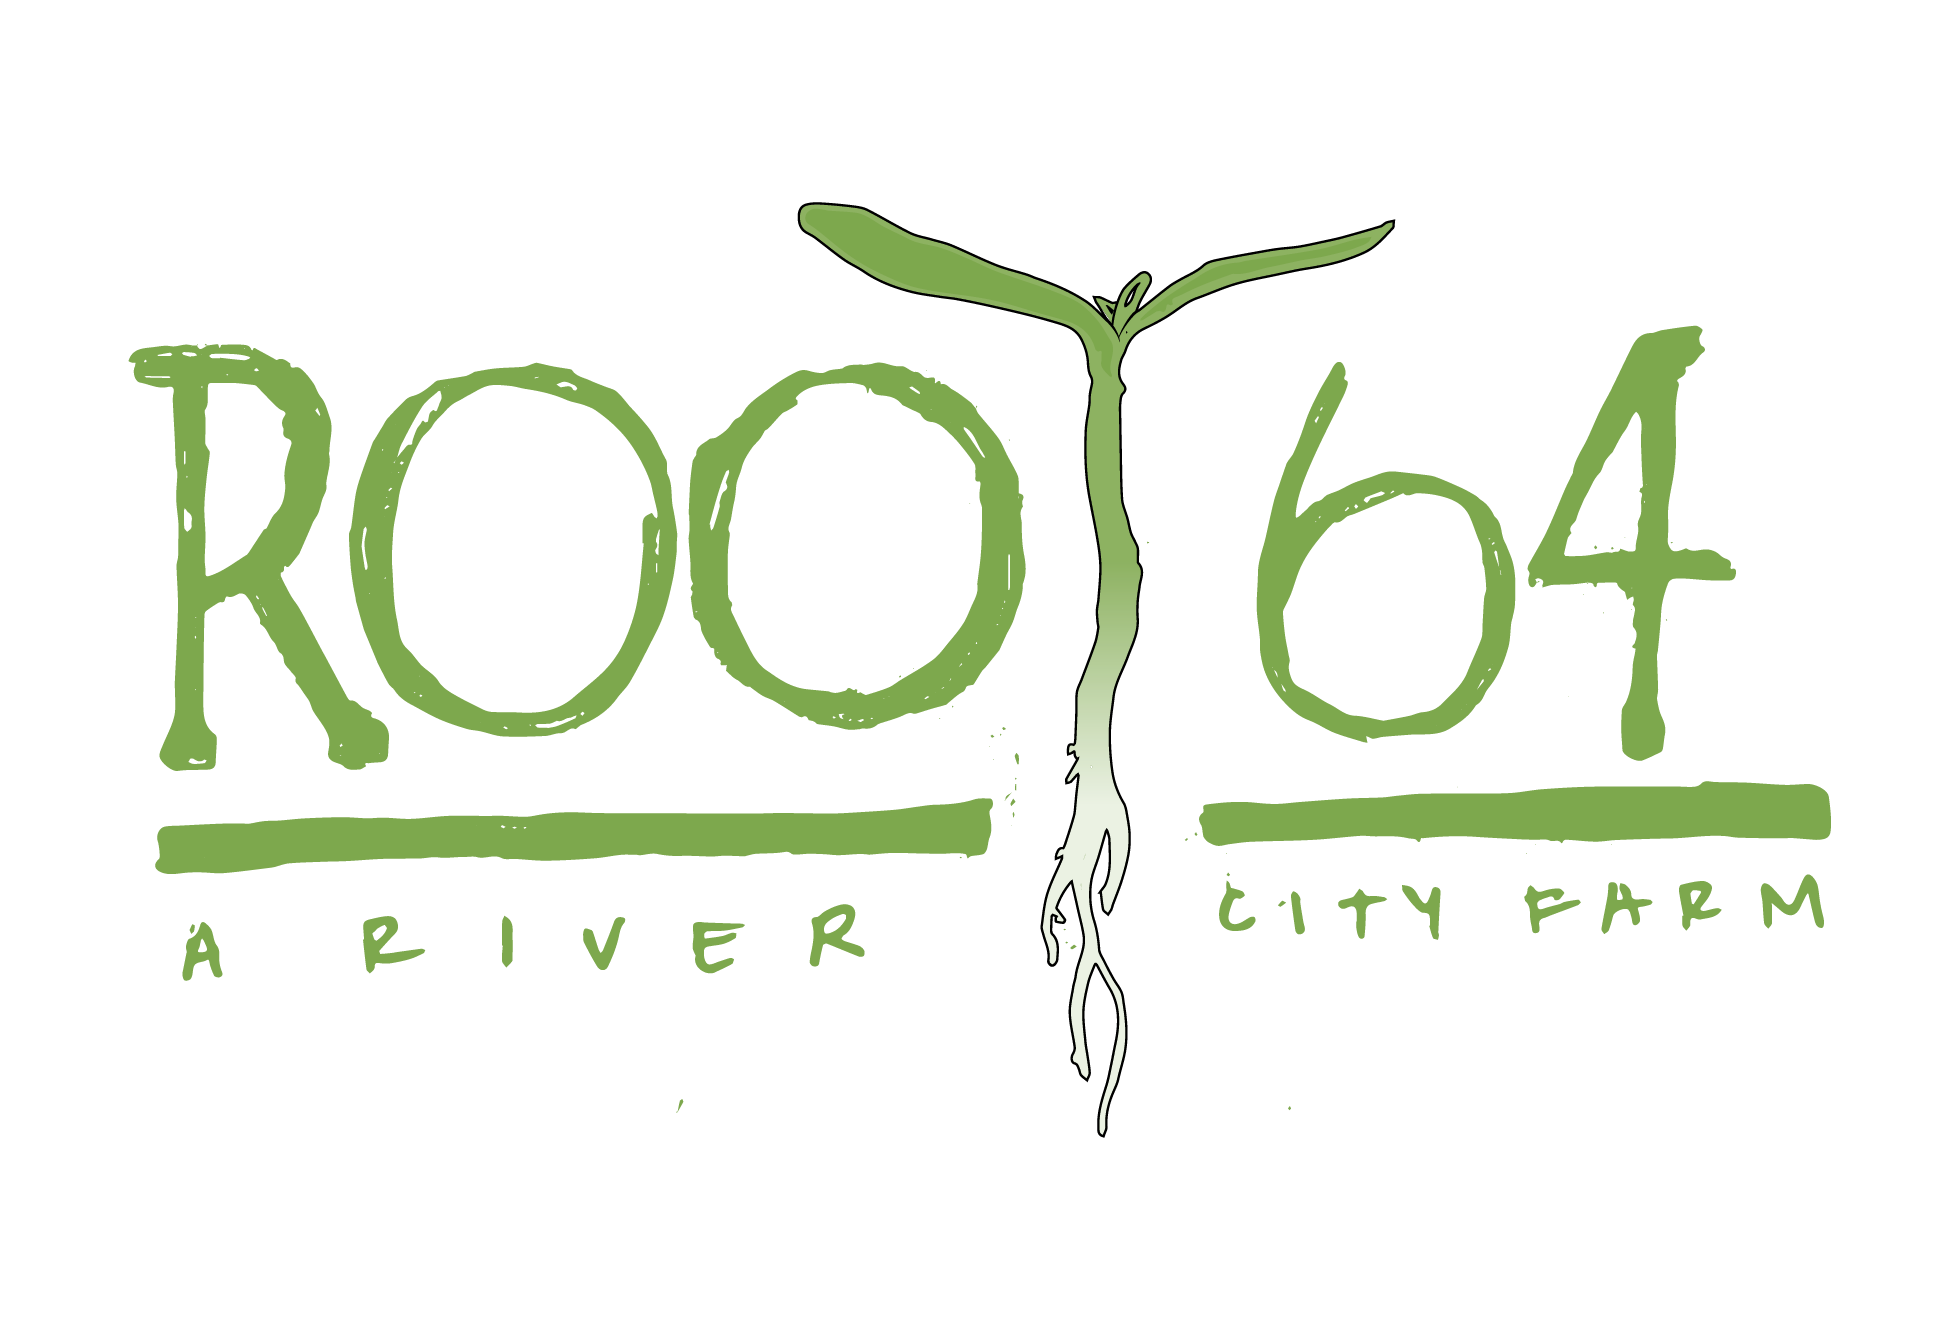 Root_64_Logo_Refinements_20180427_02.png